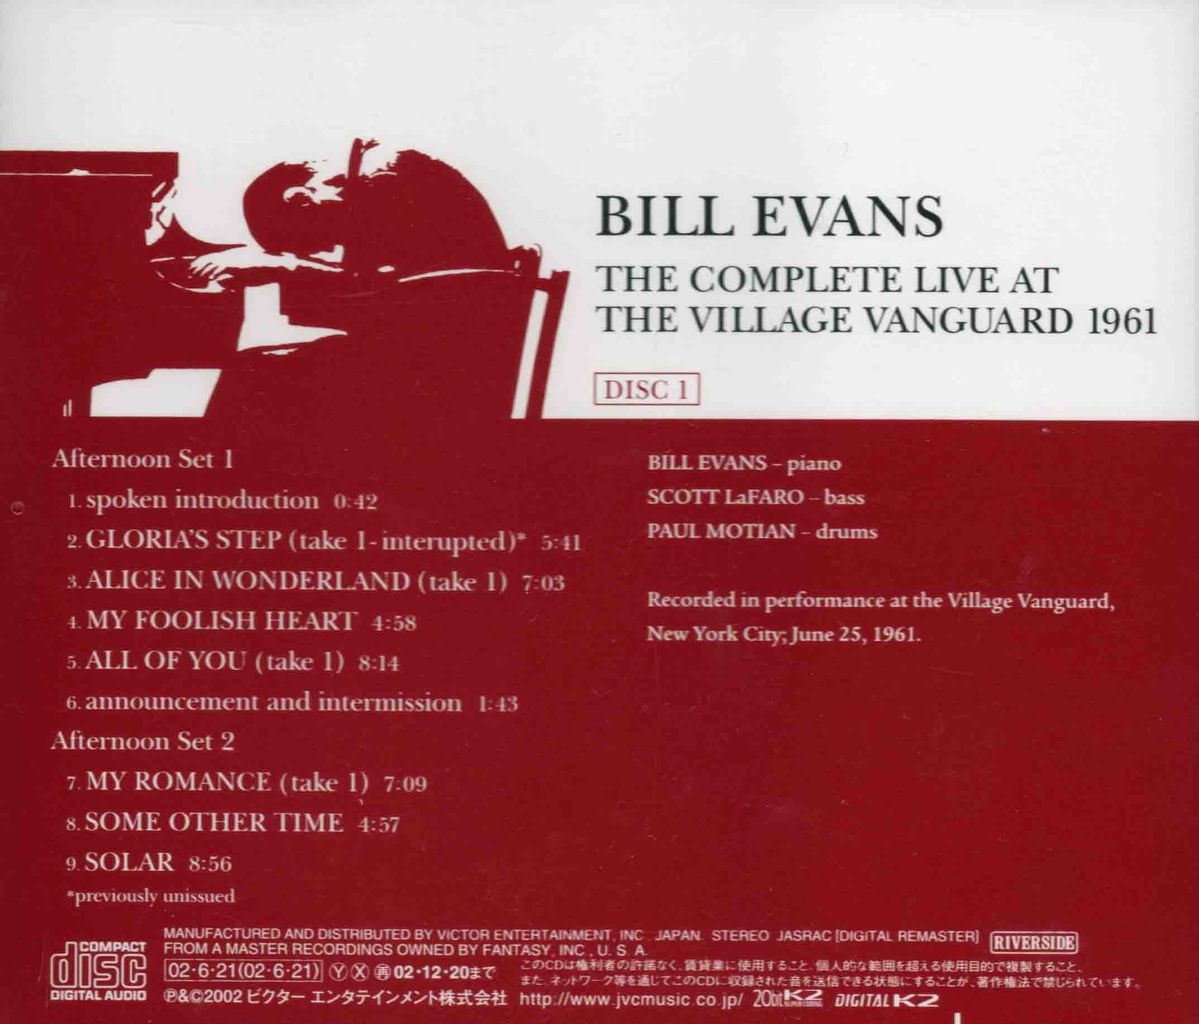 THE COMPLETE LIVE AT THE VILLAGE VANGUARD 1961-4